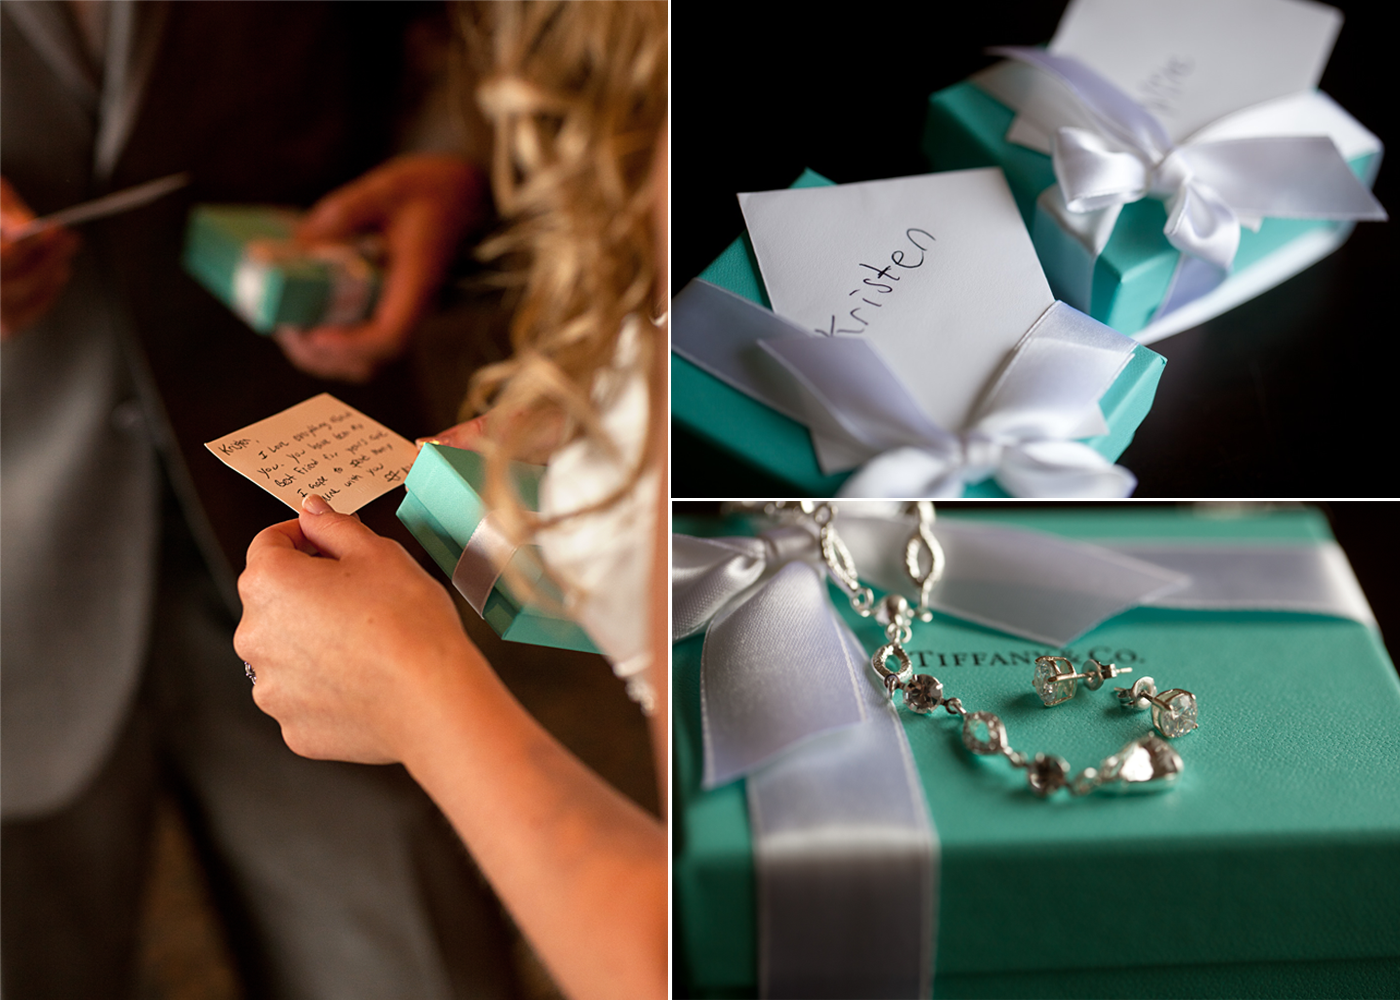 Wedding Gift To Bride From Groom : ... bridal bracelet, bride and groom exchange wedding gifts OneWed.com